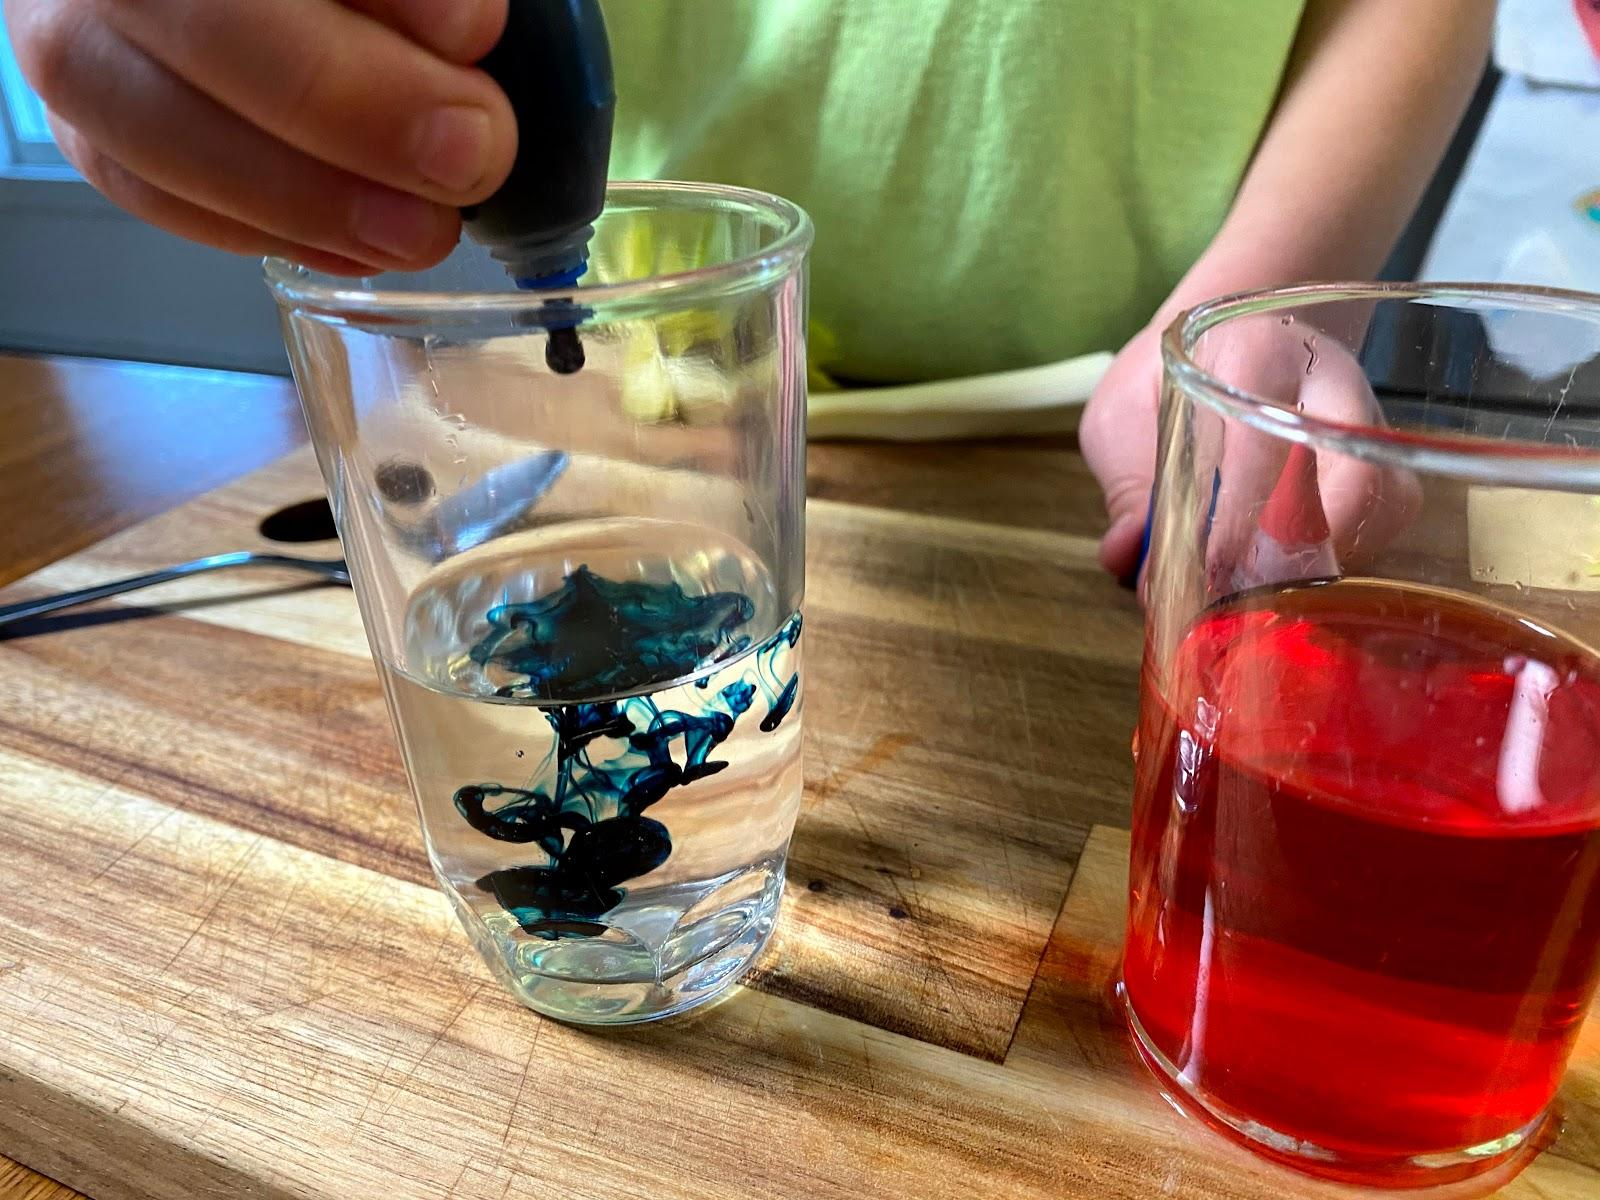 Squeezing drops of blue food coloring into a glass of water.